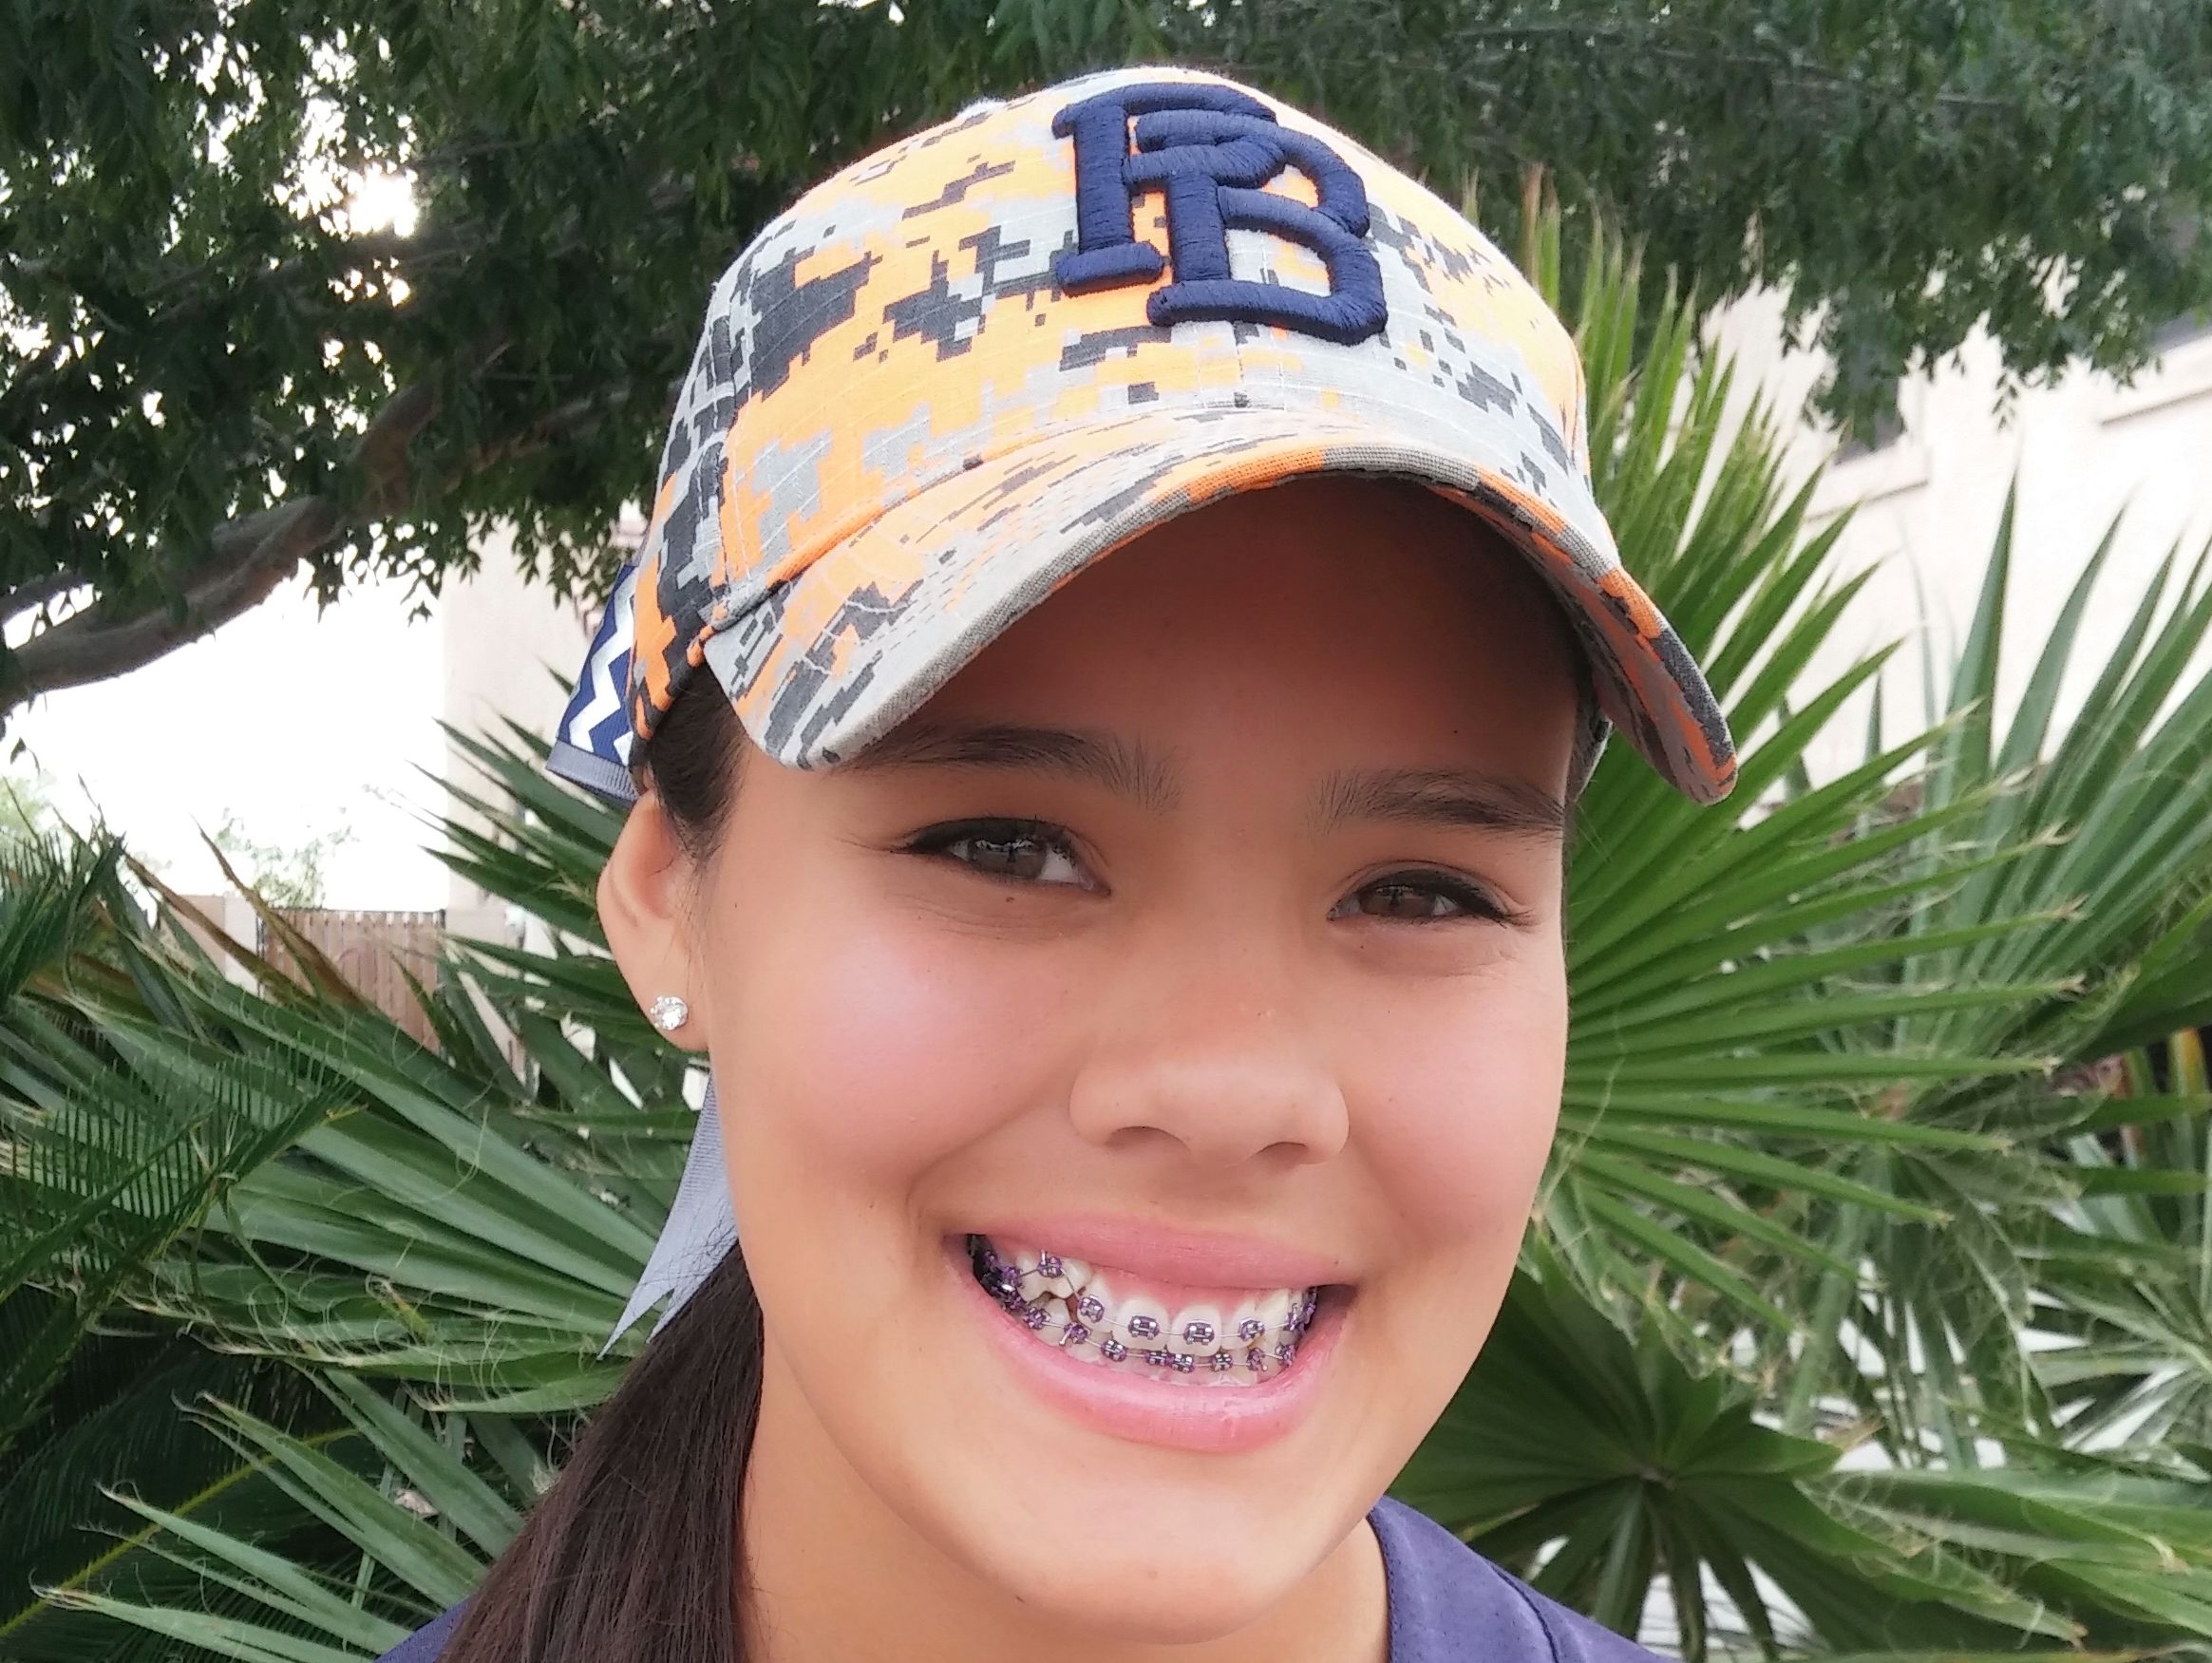 Lindsay Lopez, from San Tan Valley Poston Butte, is azcentral sports' Female Athlete of the Week, presented by La-Z-Boy Furniture Galleries, for March 31-April 7.